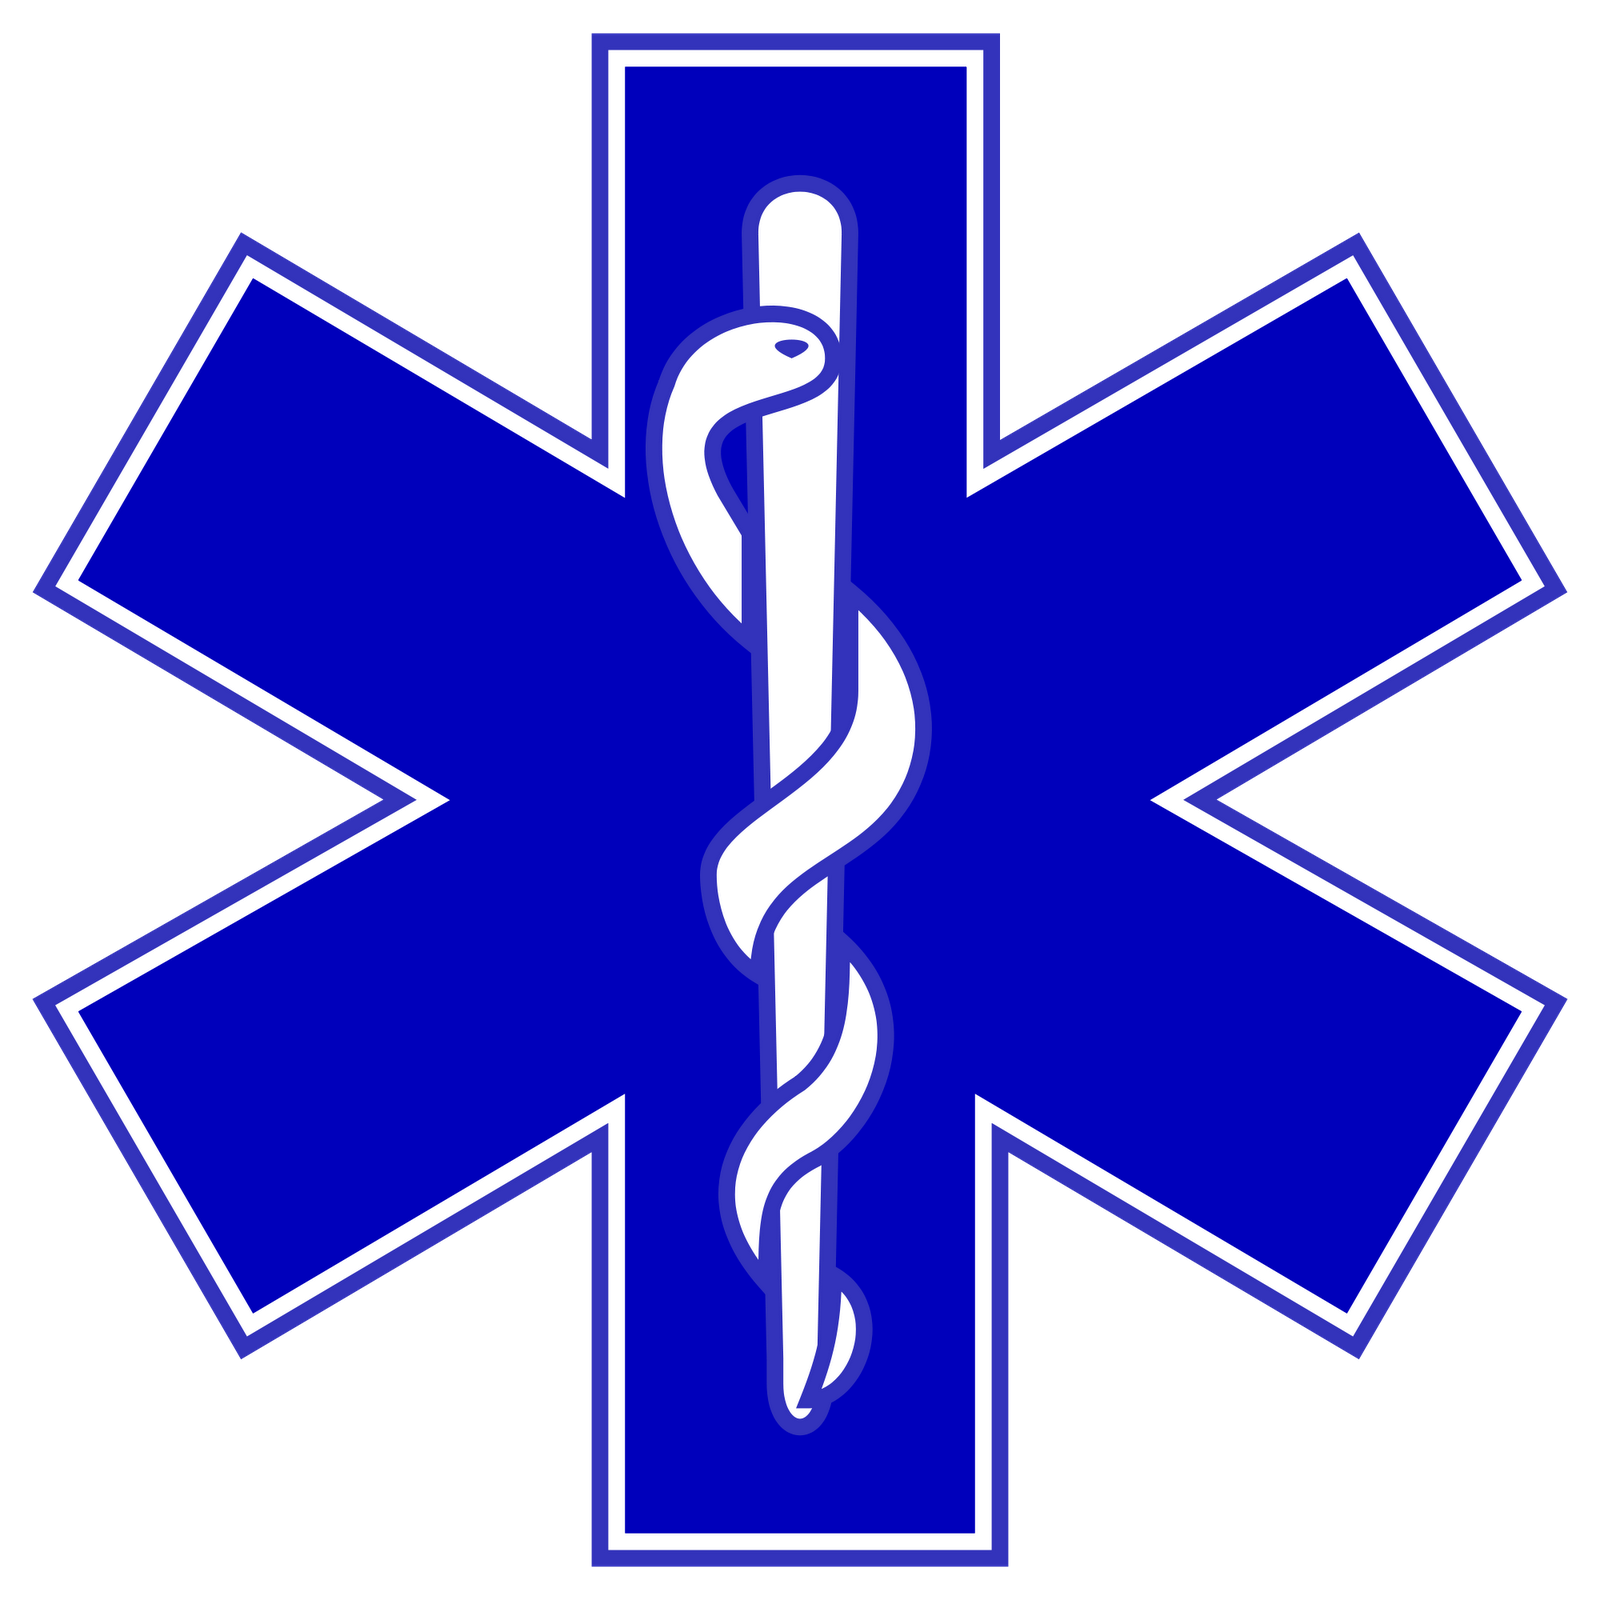 6 Best Images of Health Care Symbol - Health Care Symbol Clip Art ...